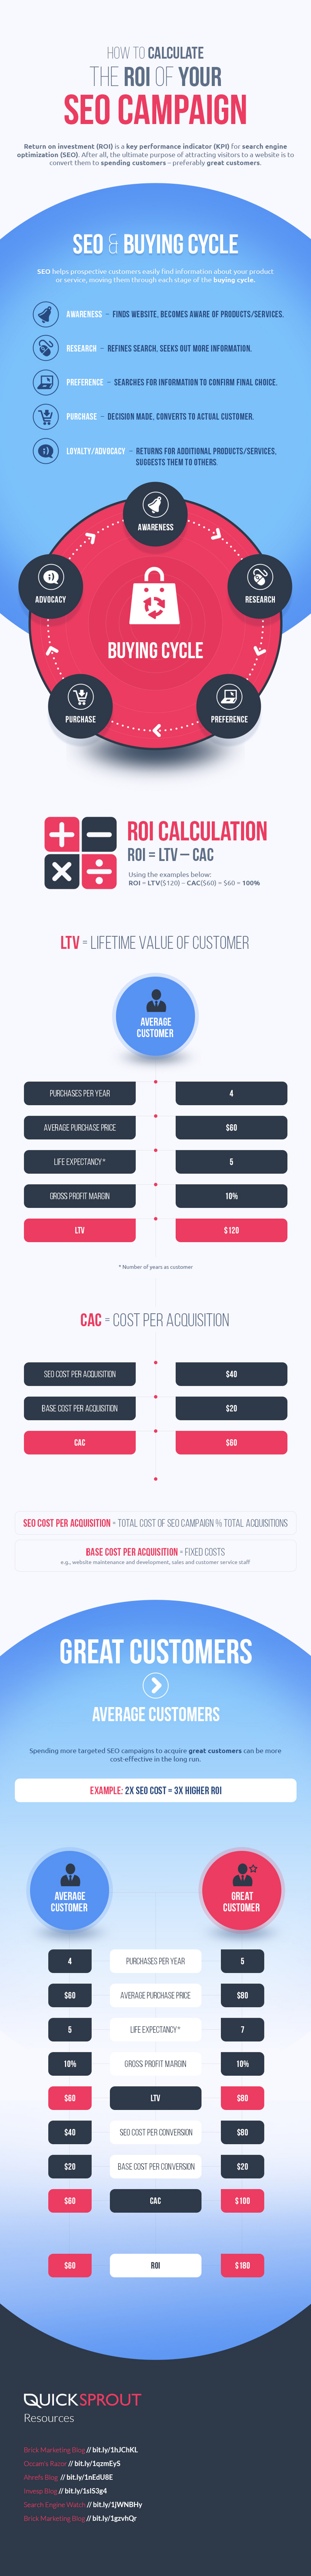 ROI-of-Search-Engine-Optimization